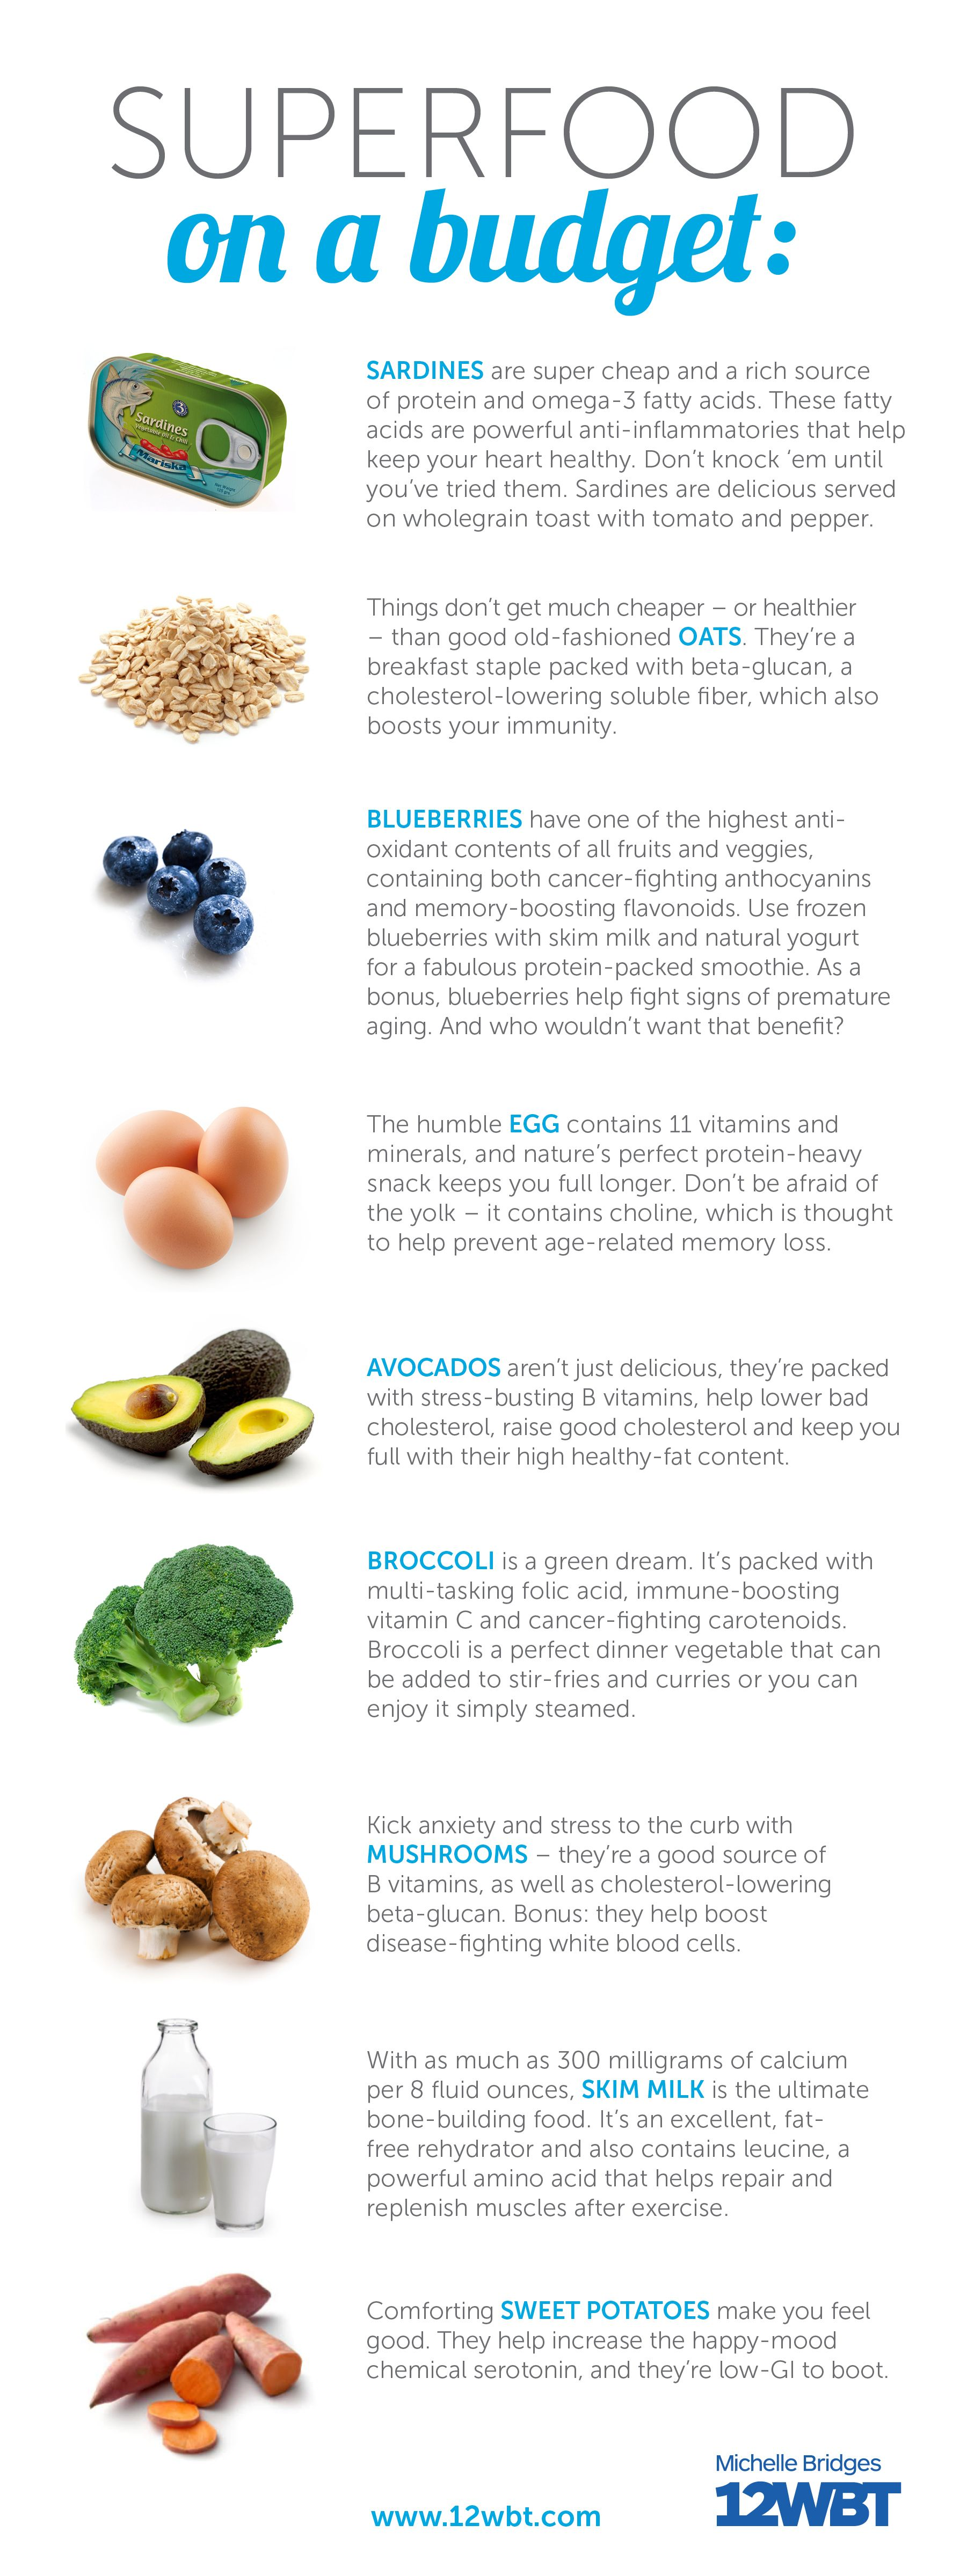 Superfoods don't have to come at a SUPER cost! Check out